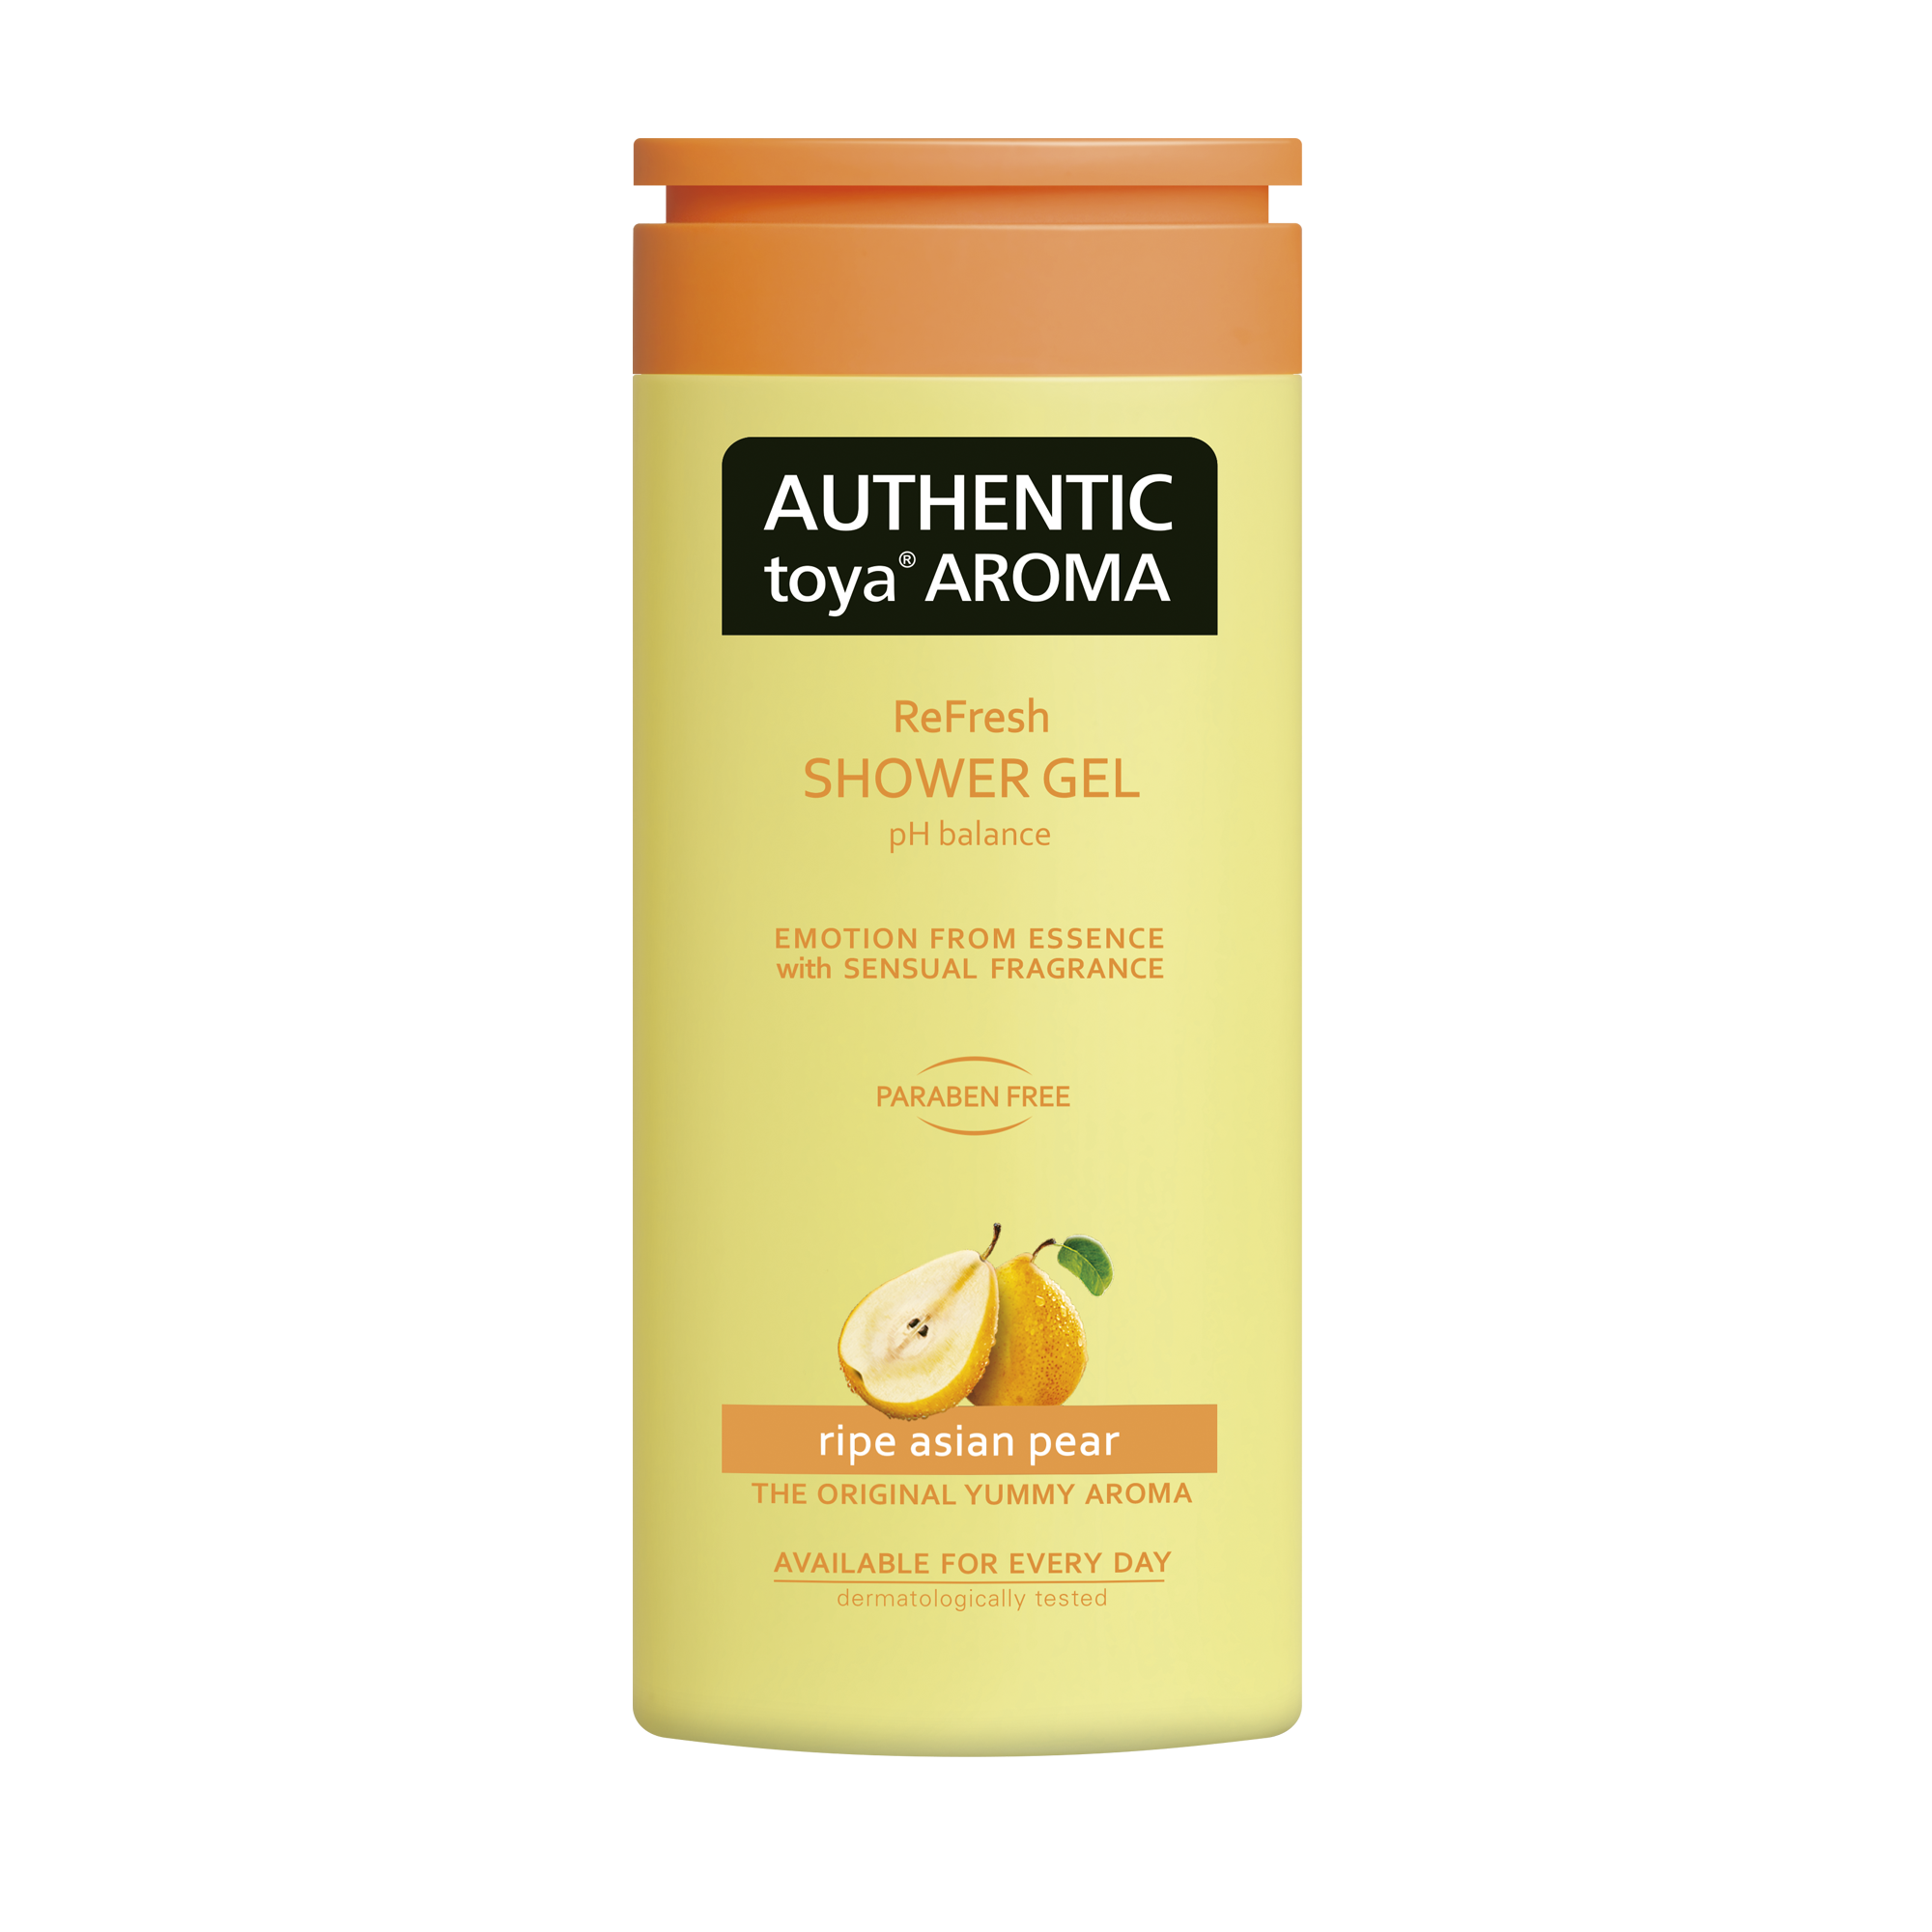 AUTHENTIC toya AROMA ripe asian pear shower gel